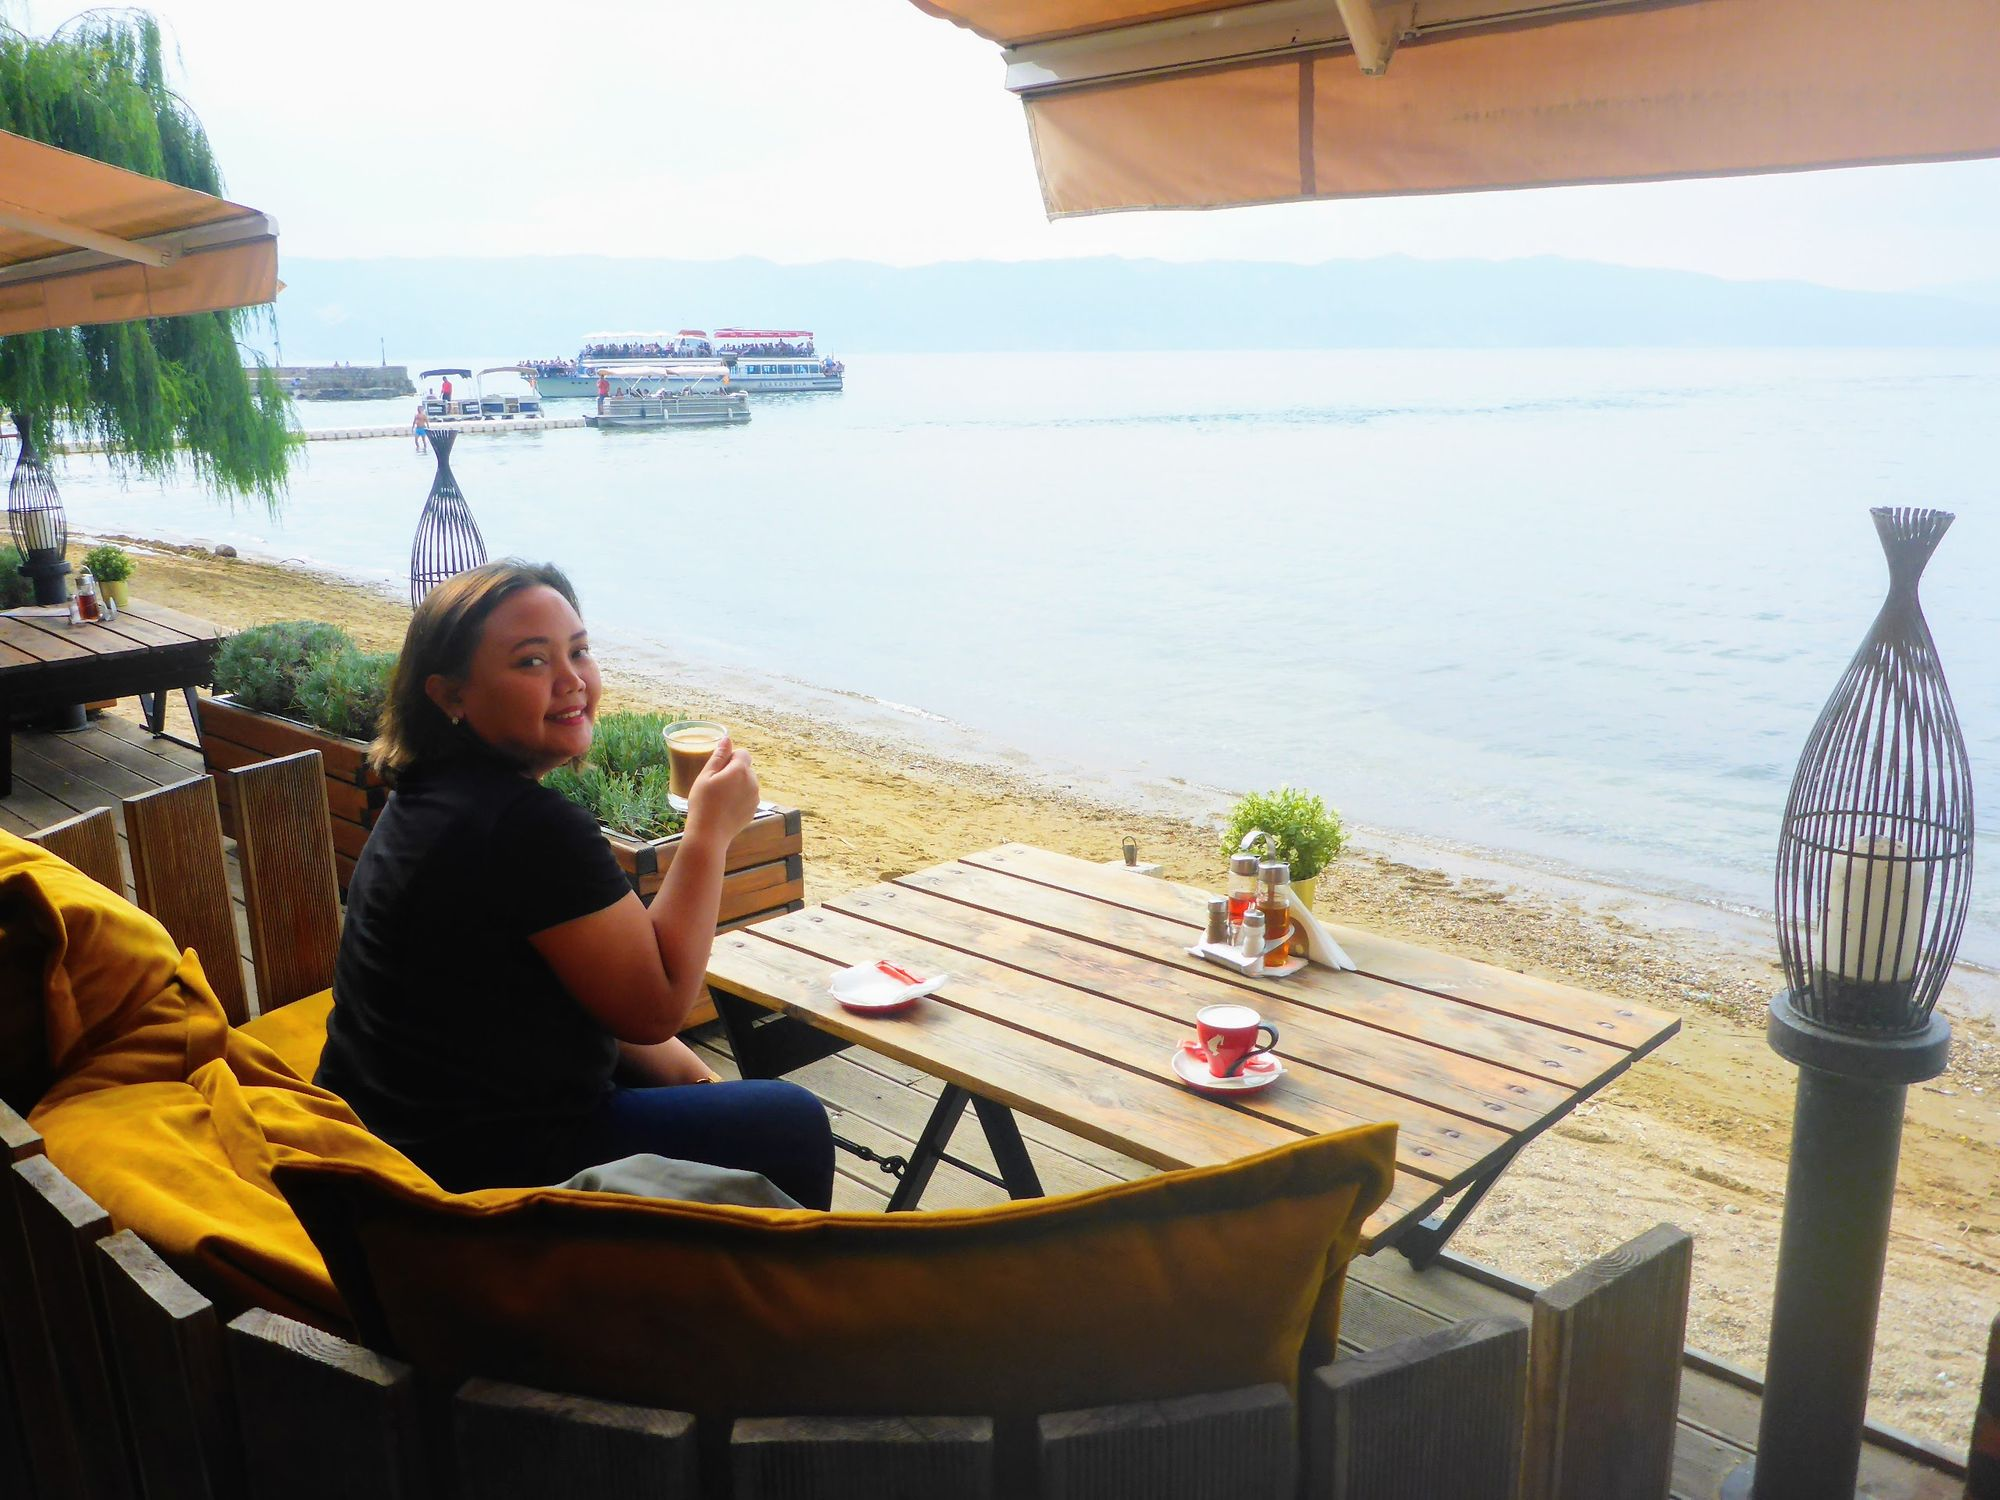 Sipping a coffee in St. Naum